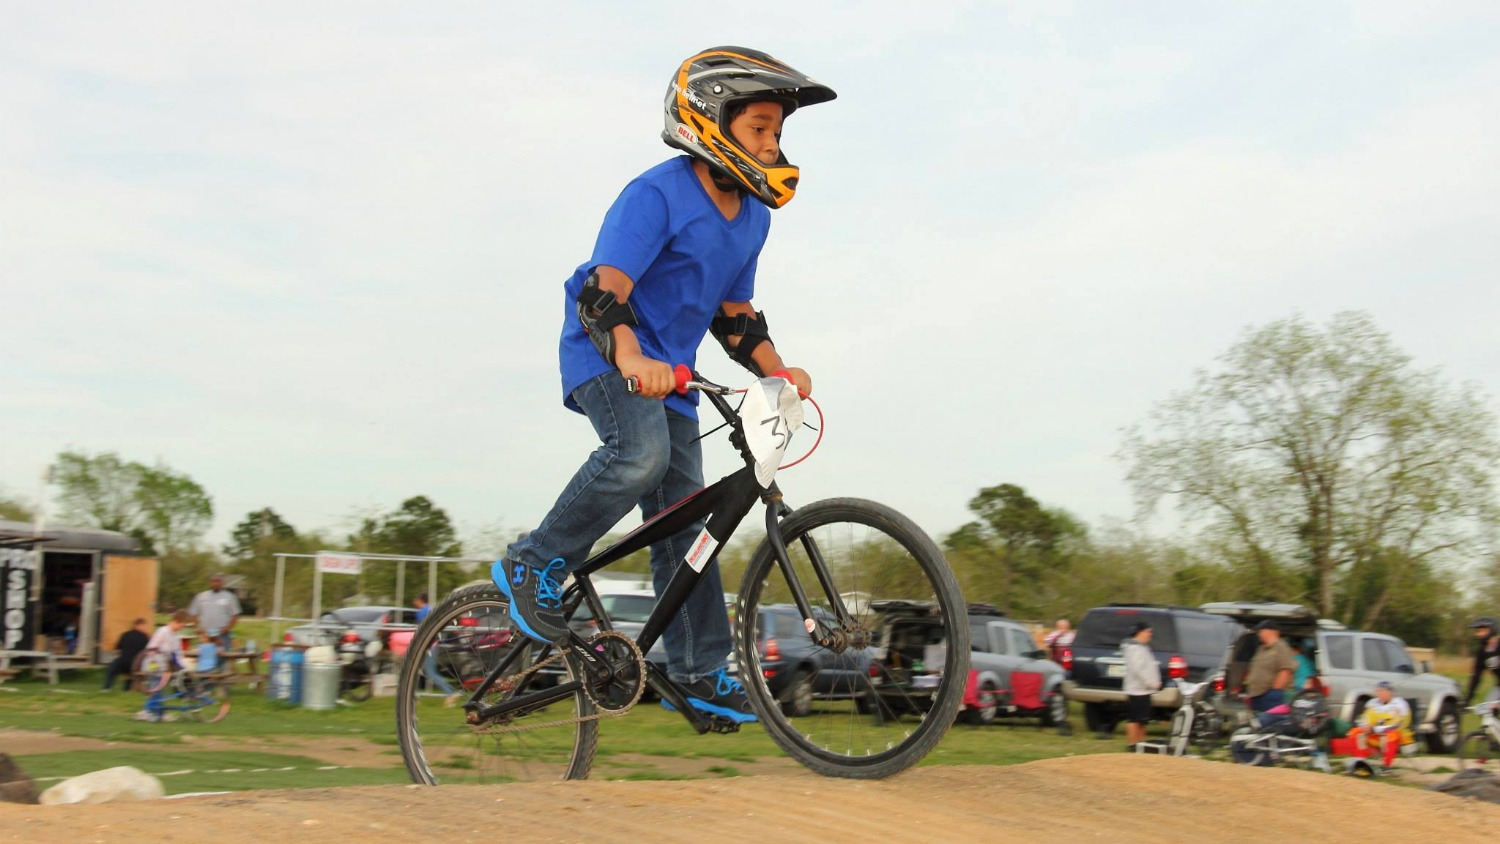 Get started now riding Pearland BMX